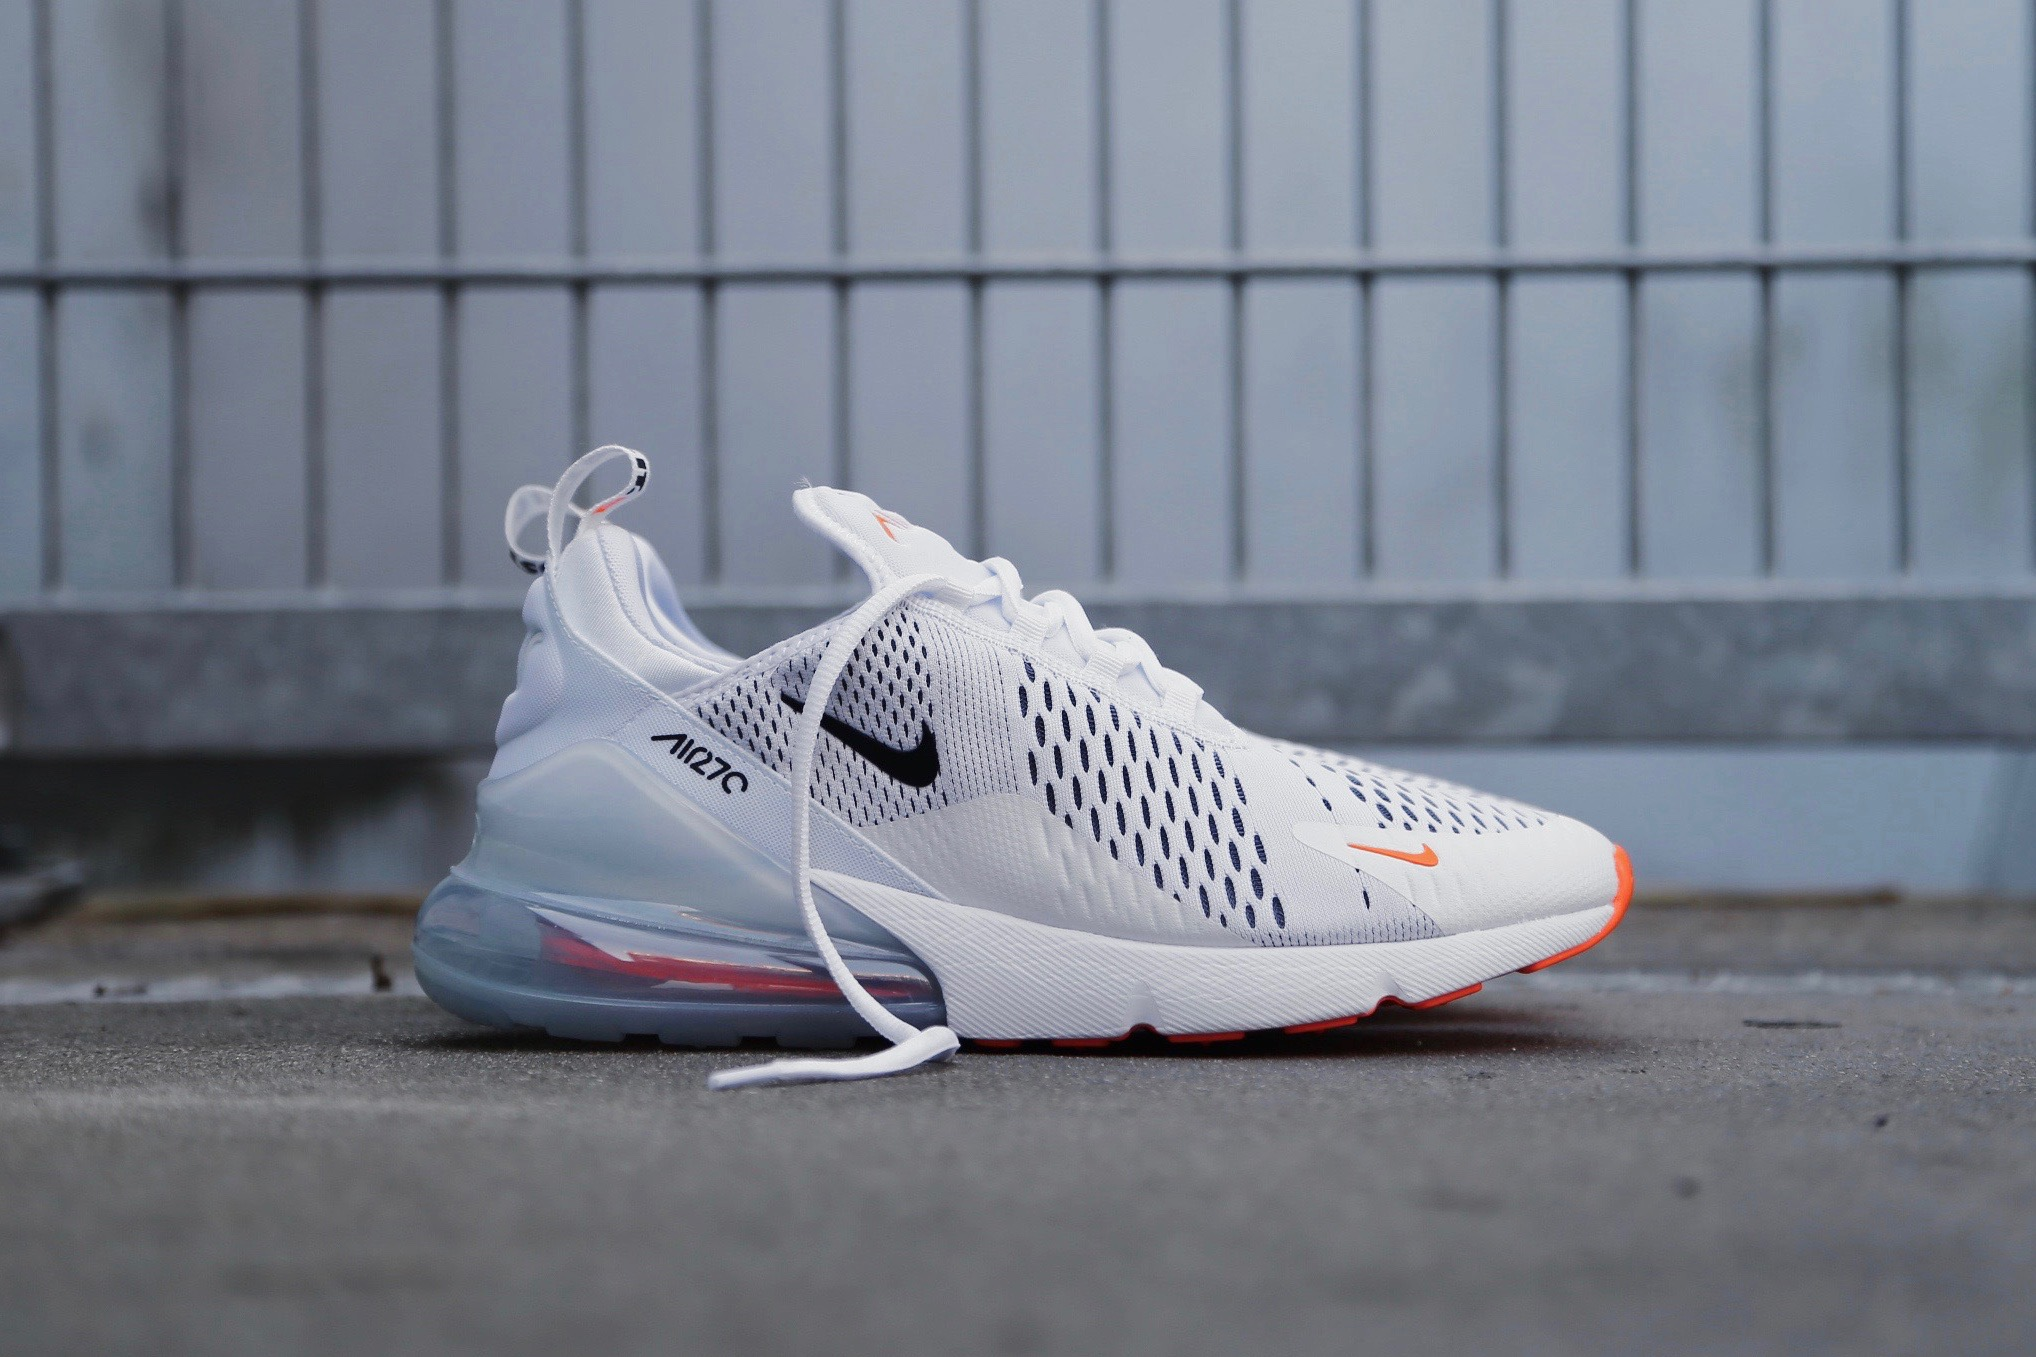 cozy fresh 91f60 e8b27 Nike Air Max 270 - White / Total Orange / Black